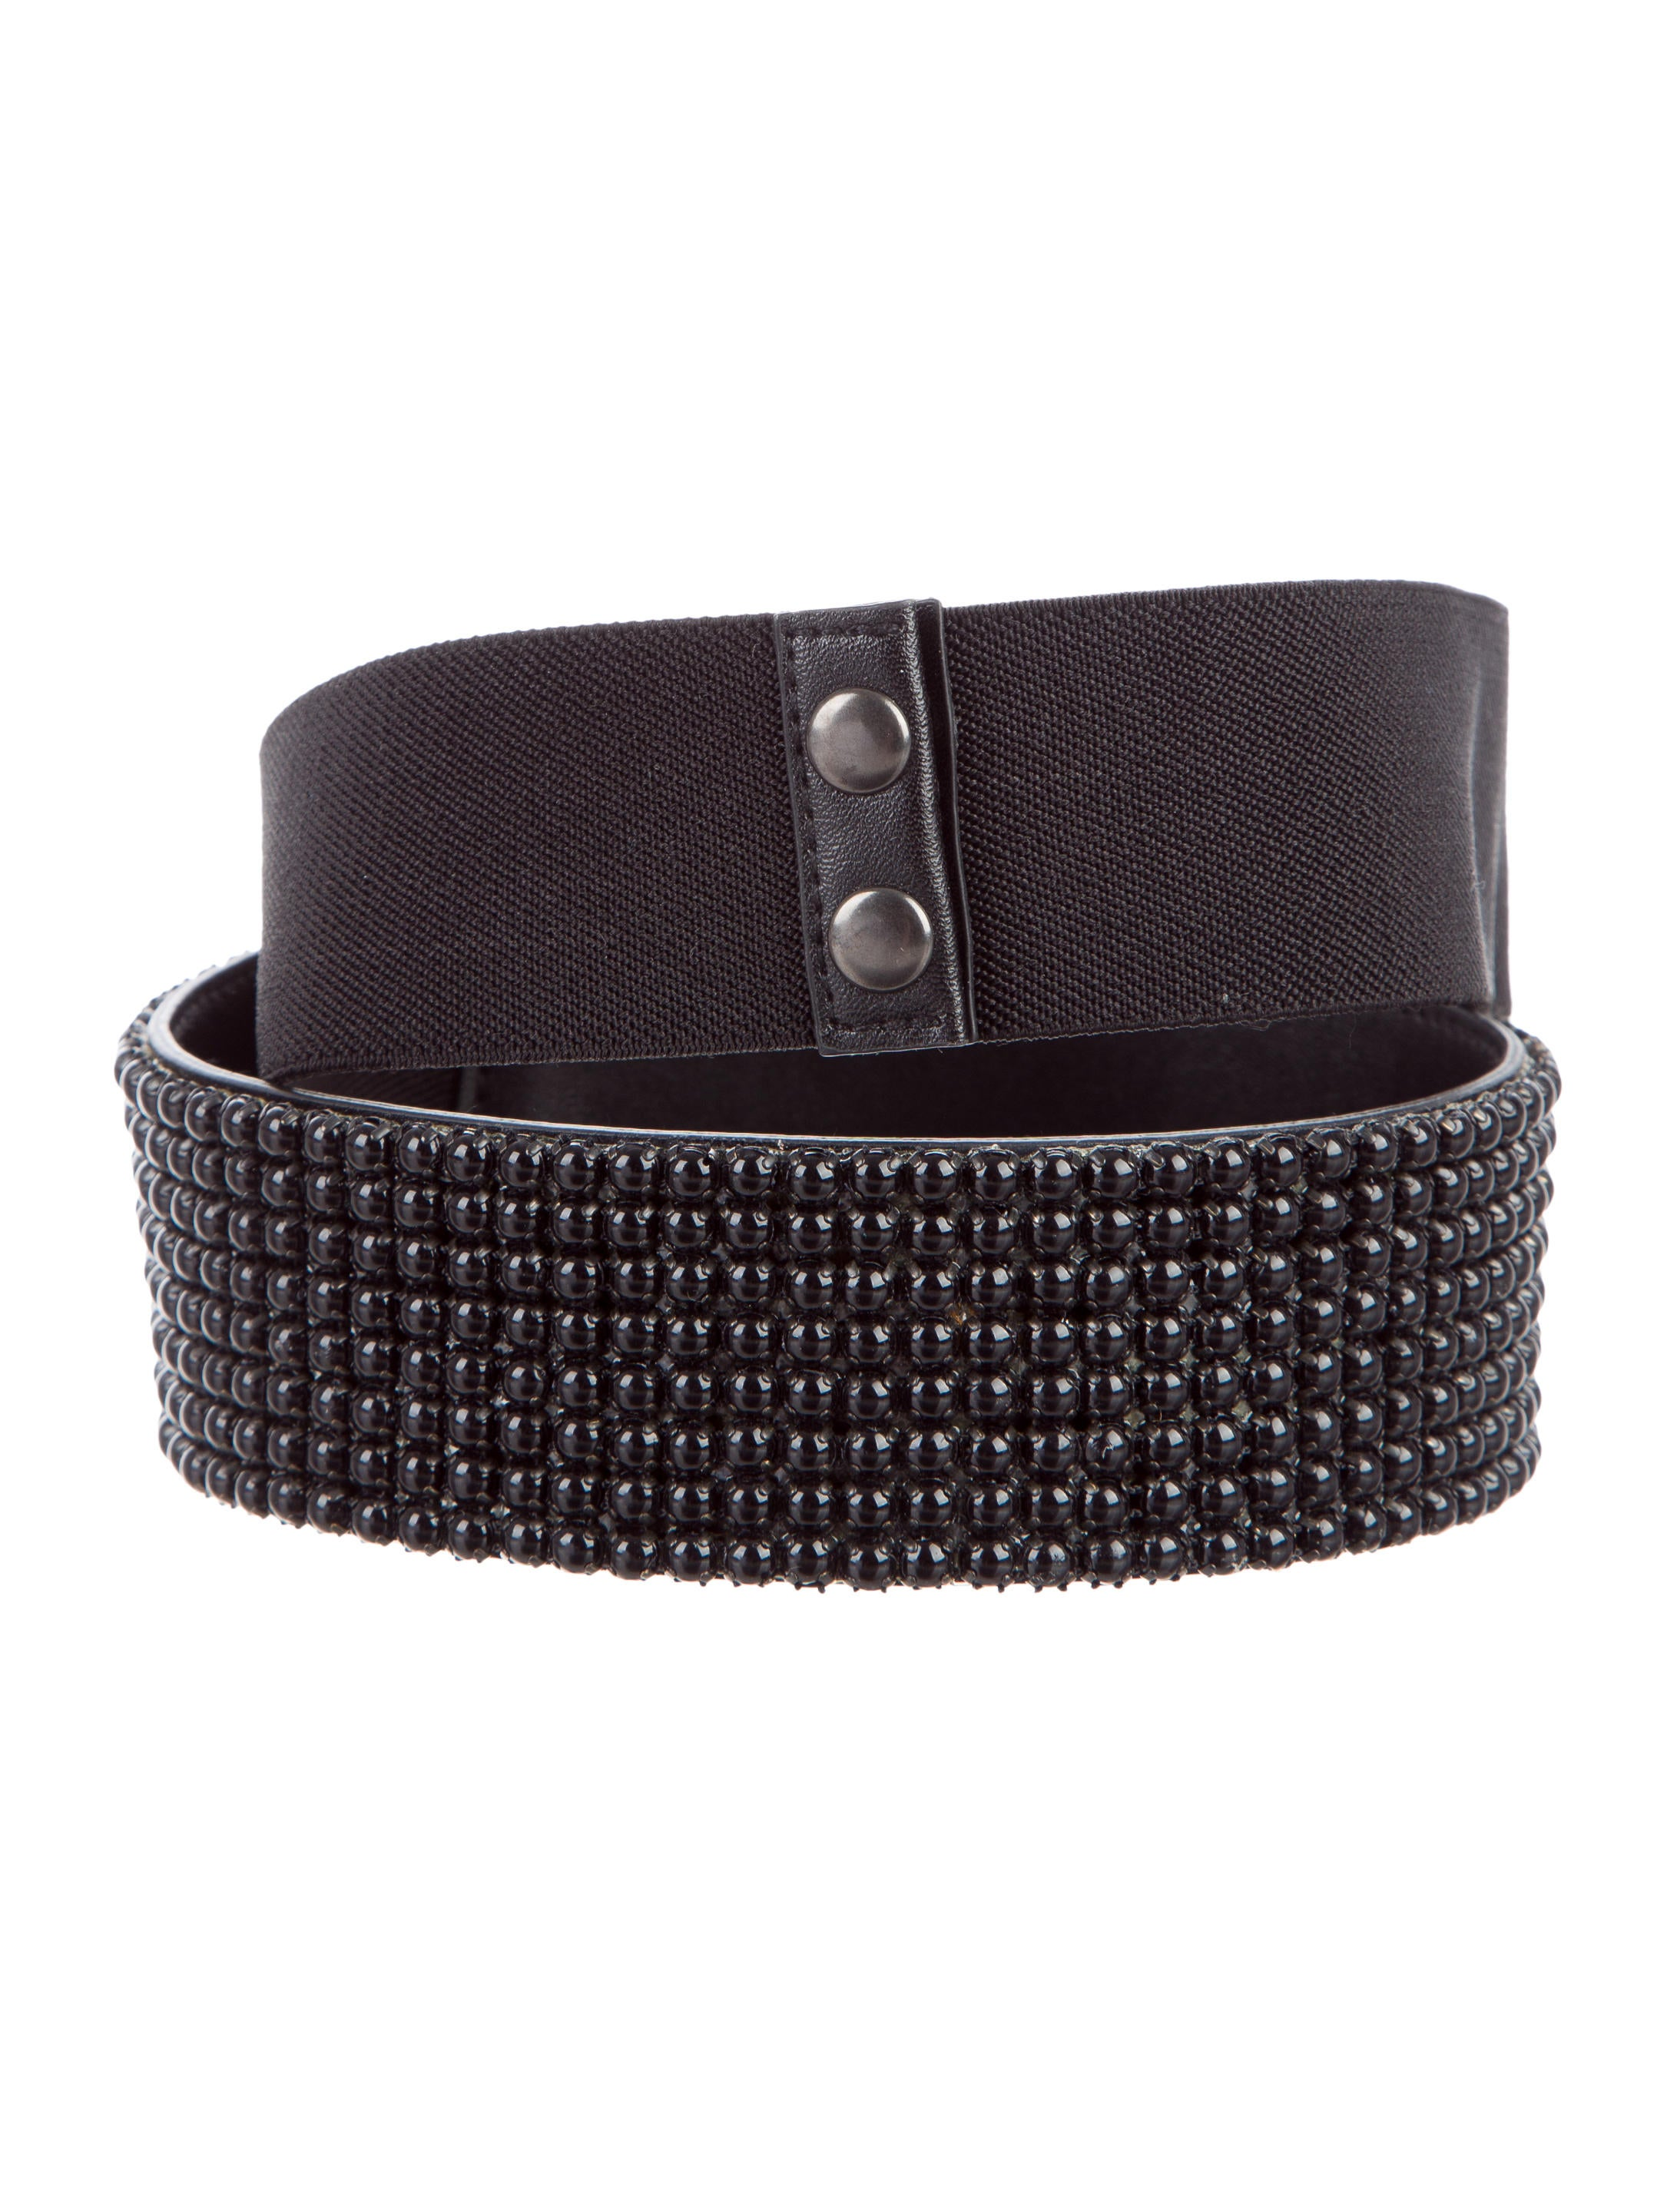 ★ PAIGE Rylan Embellished Skinny Leather Belt @ Compare Price Womens Belts, Free shipping and returns on [PAIGE RYLAN EMBELLISHED SKINNY LEATHER BELT] Find this Season s Must-Have Styles From Top Brands Order Online Today. Check Our Reviews Before You Buy!.